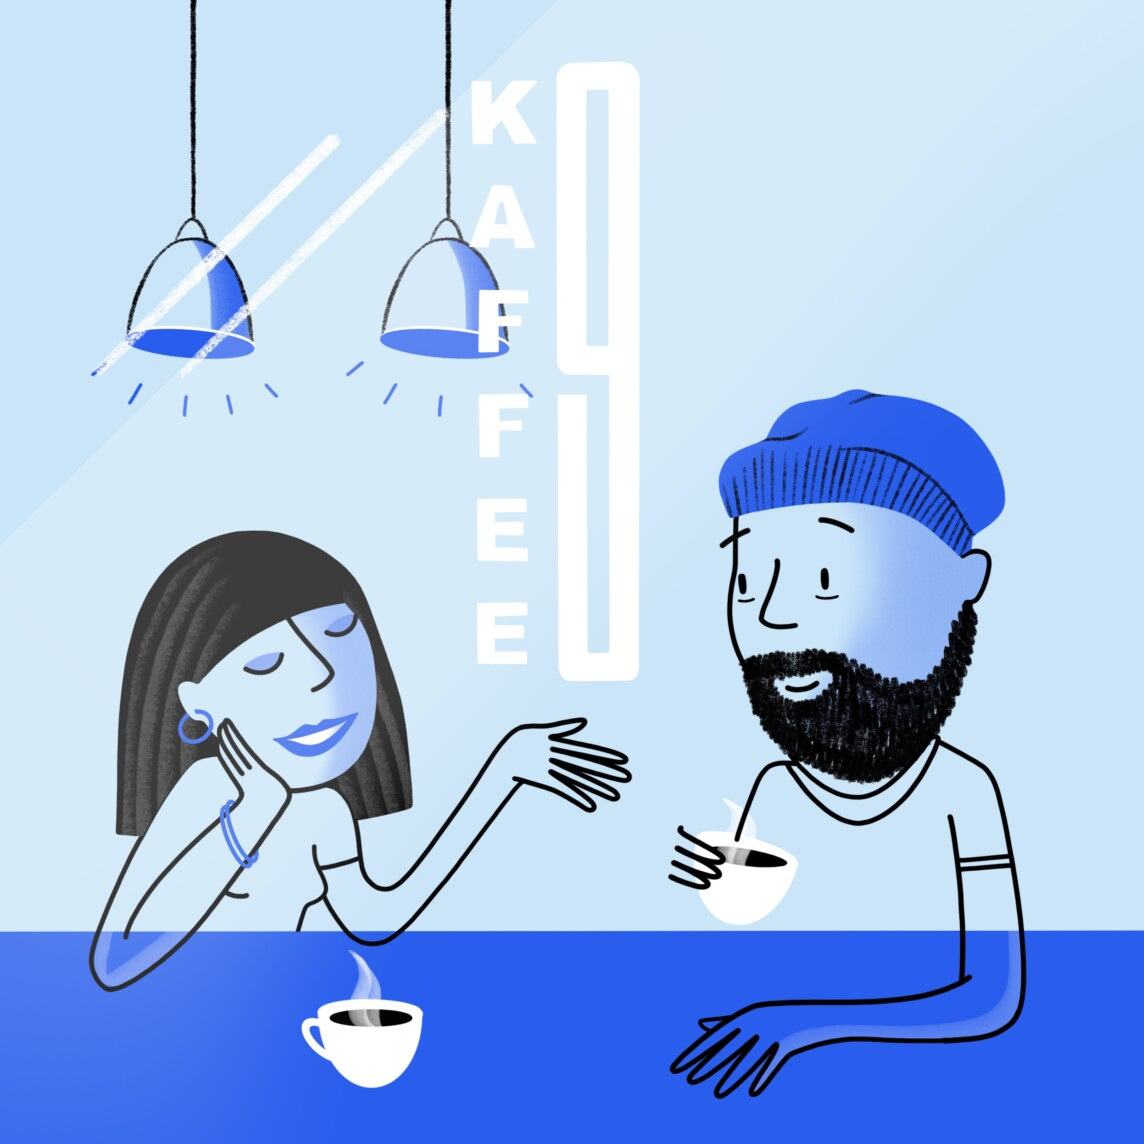 Illustration Kaffee 9 Cafe Berlin